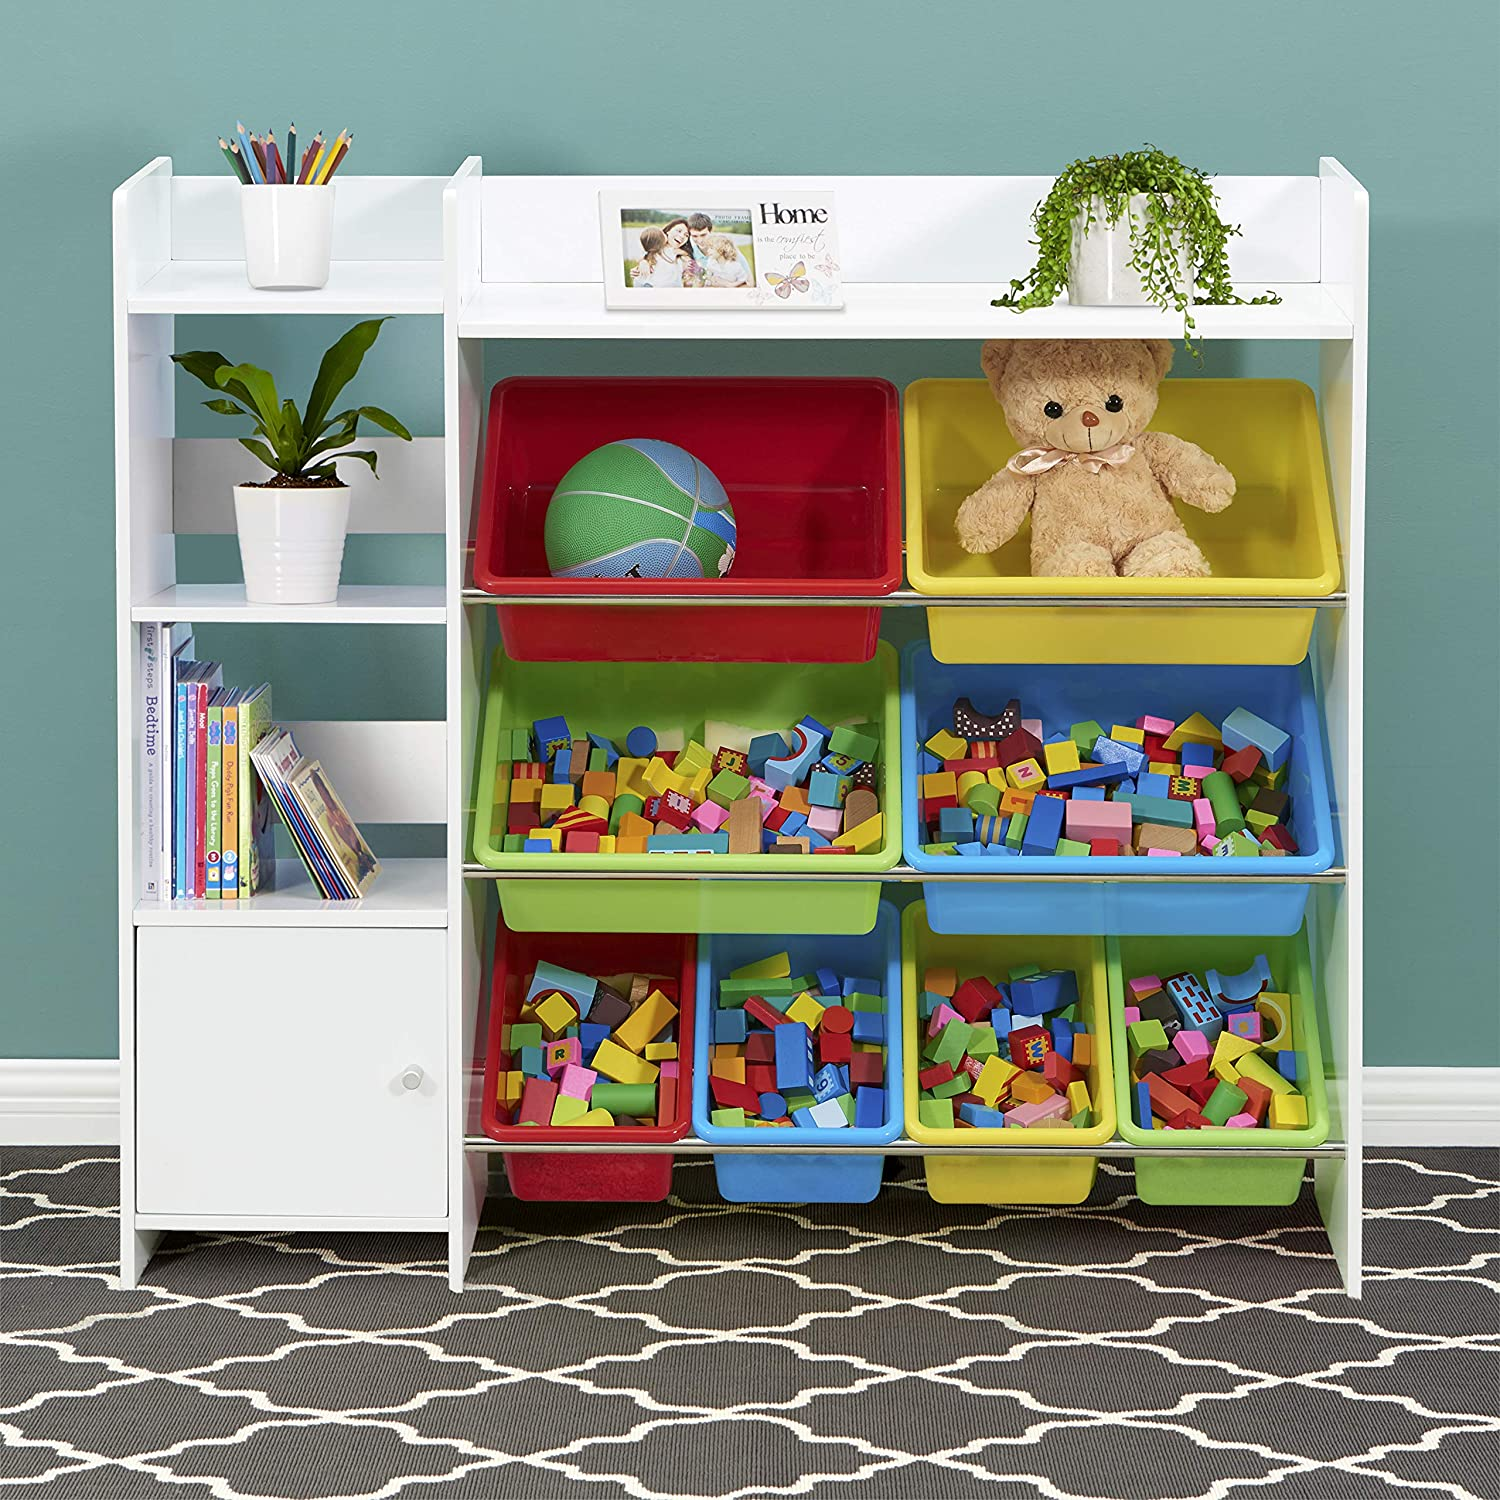 Amazon.com: Sturdis Kids Toy Storage Organizer with Kids Toy Shelf